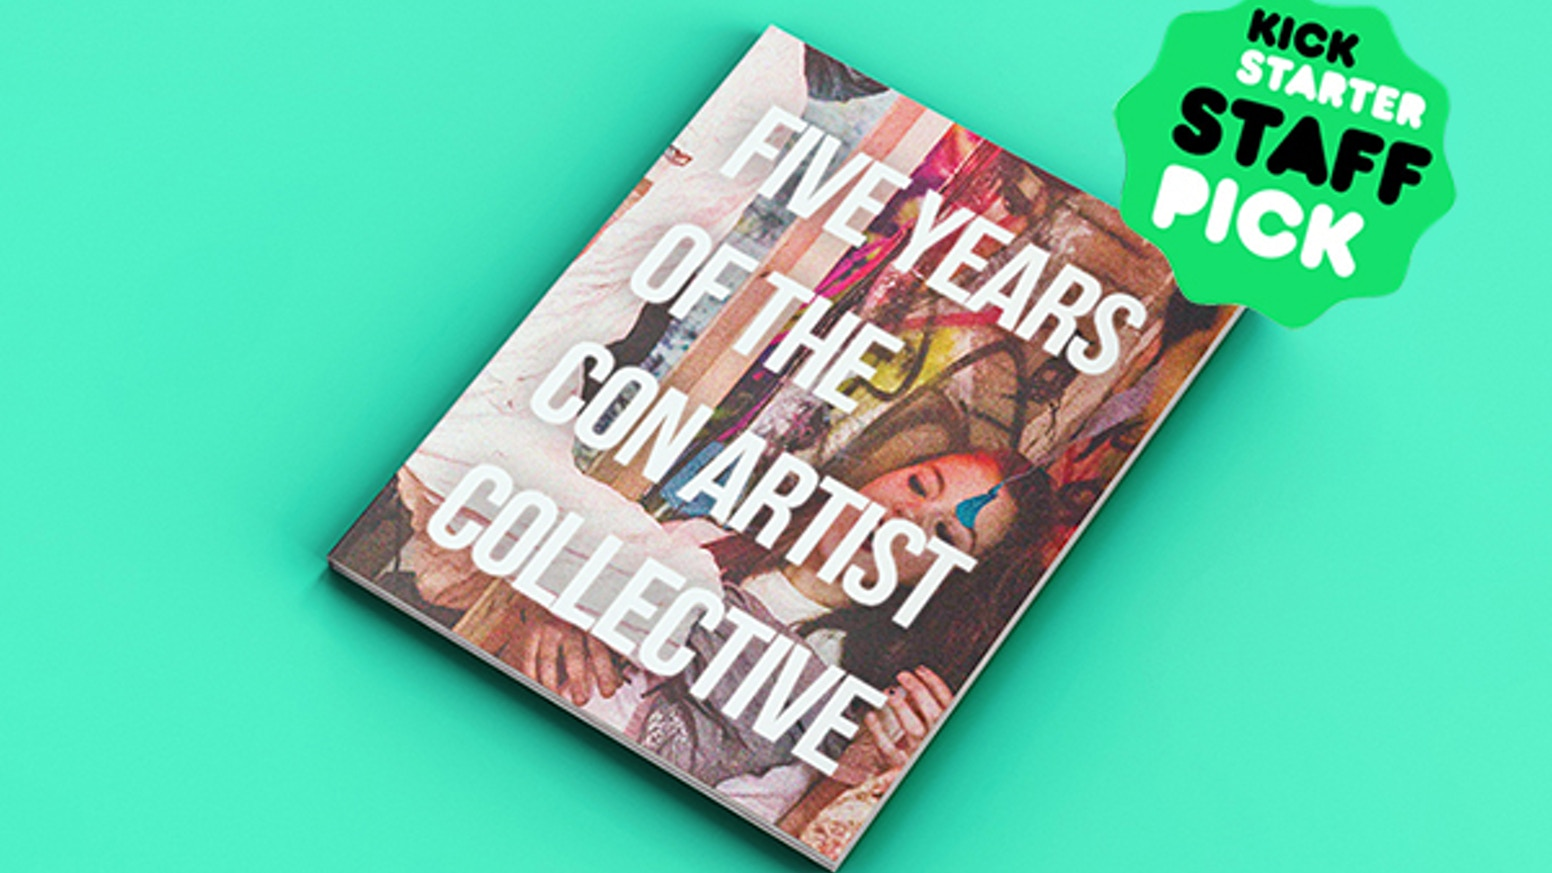 The Con Artist Collective is celebrating it's 5 year anniversary by publishing a beautiful book featuring work from over 400 artists